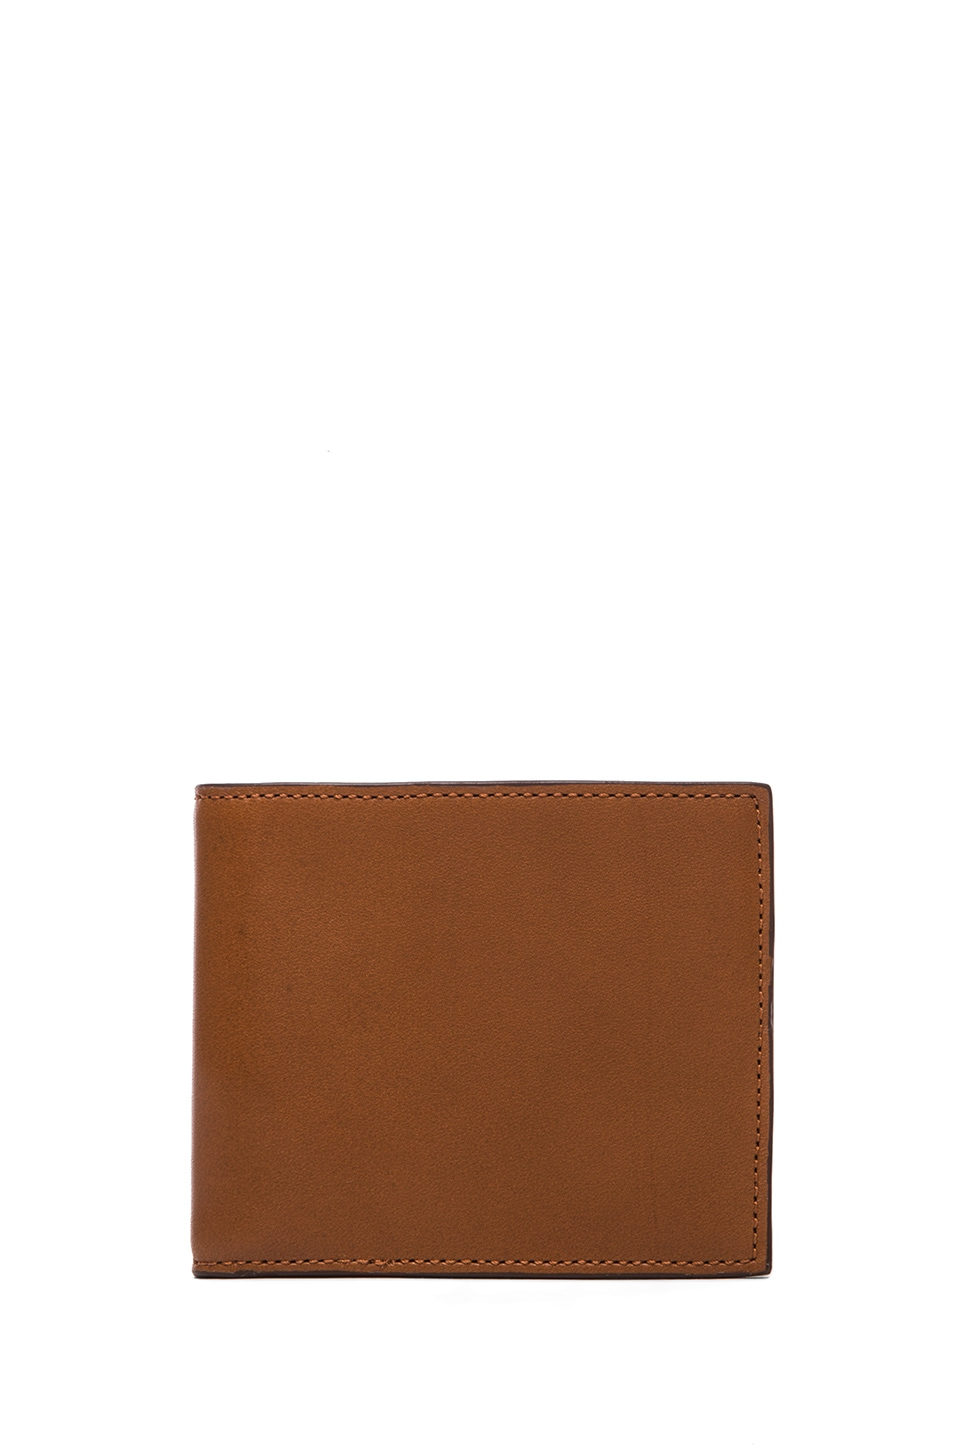 Jack Spade Mill Leather Bill Holder in Tobacco & Tank